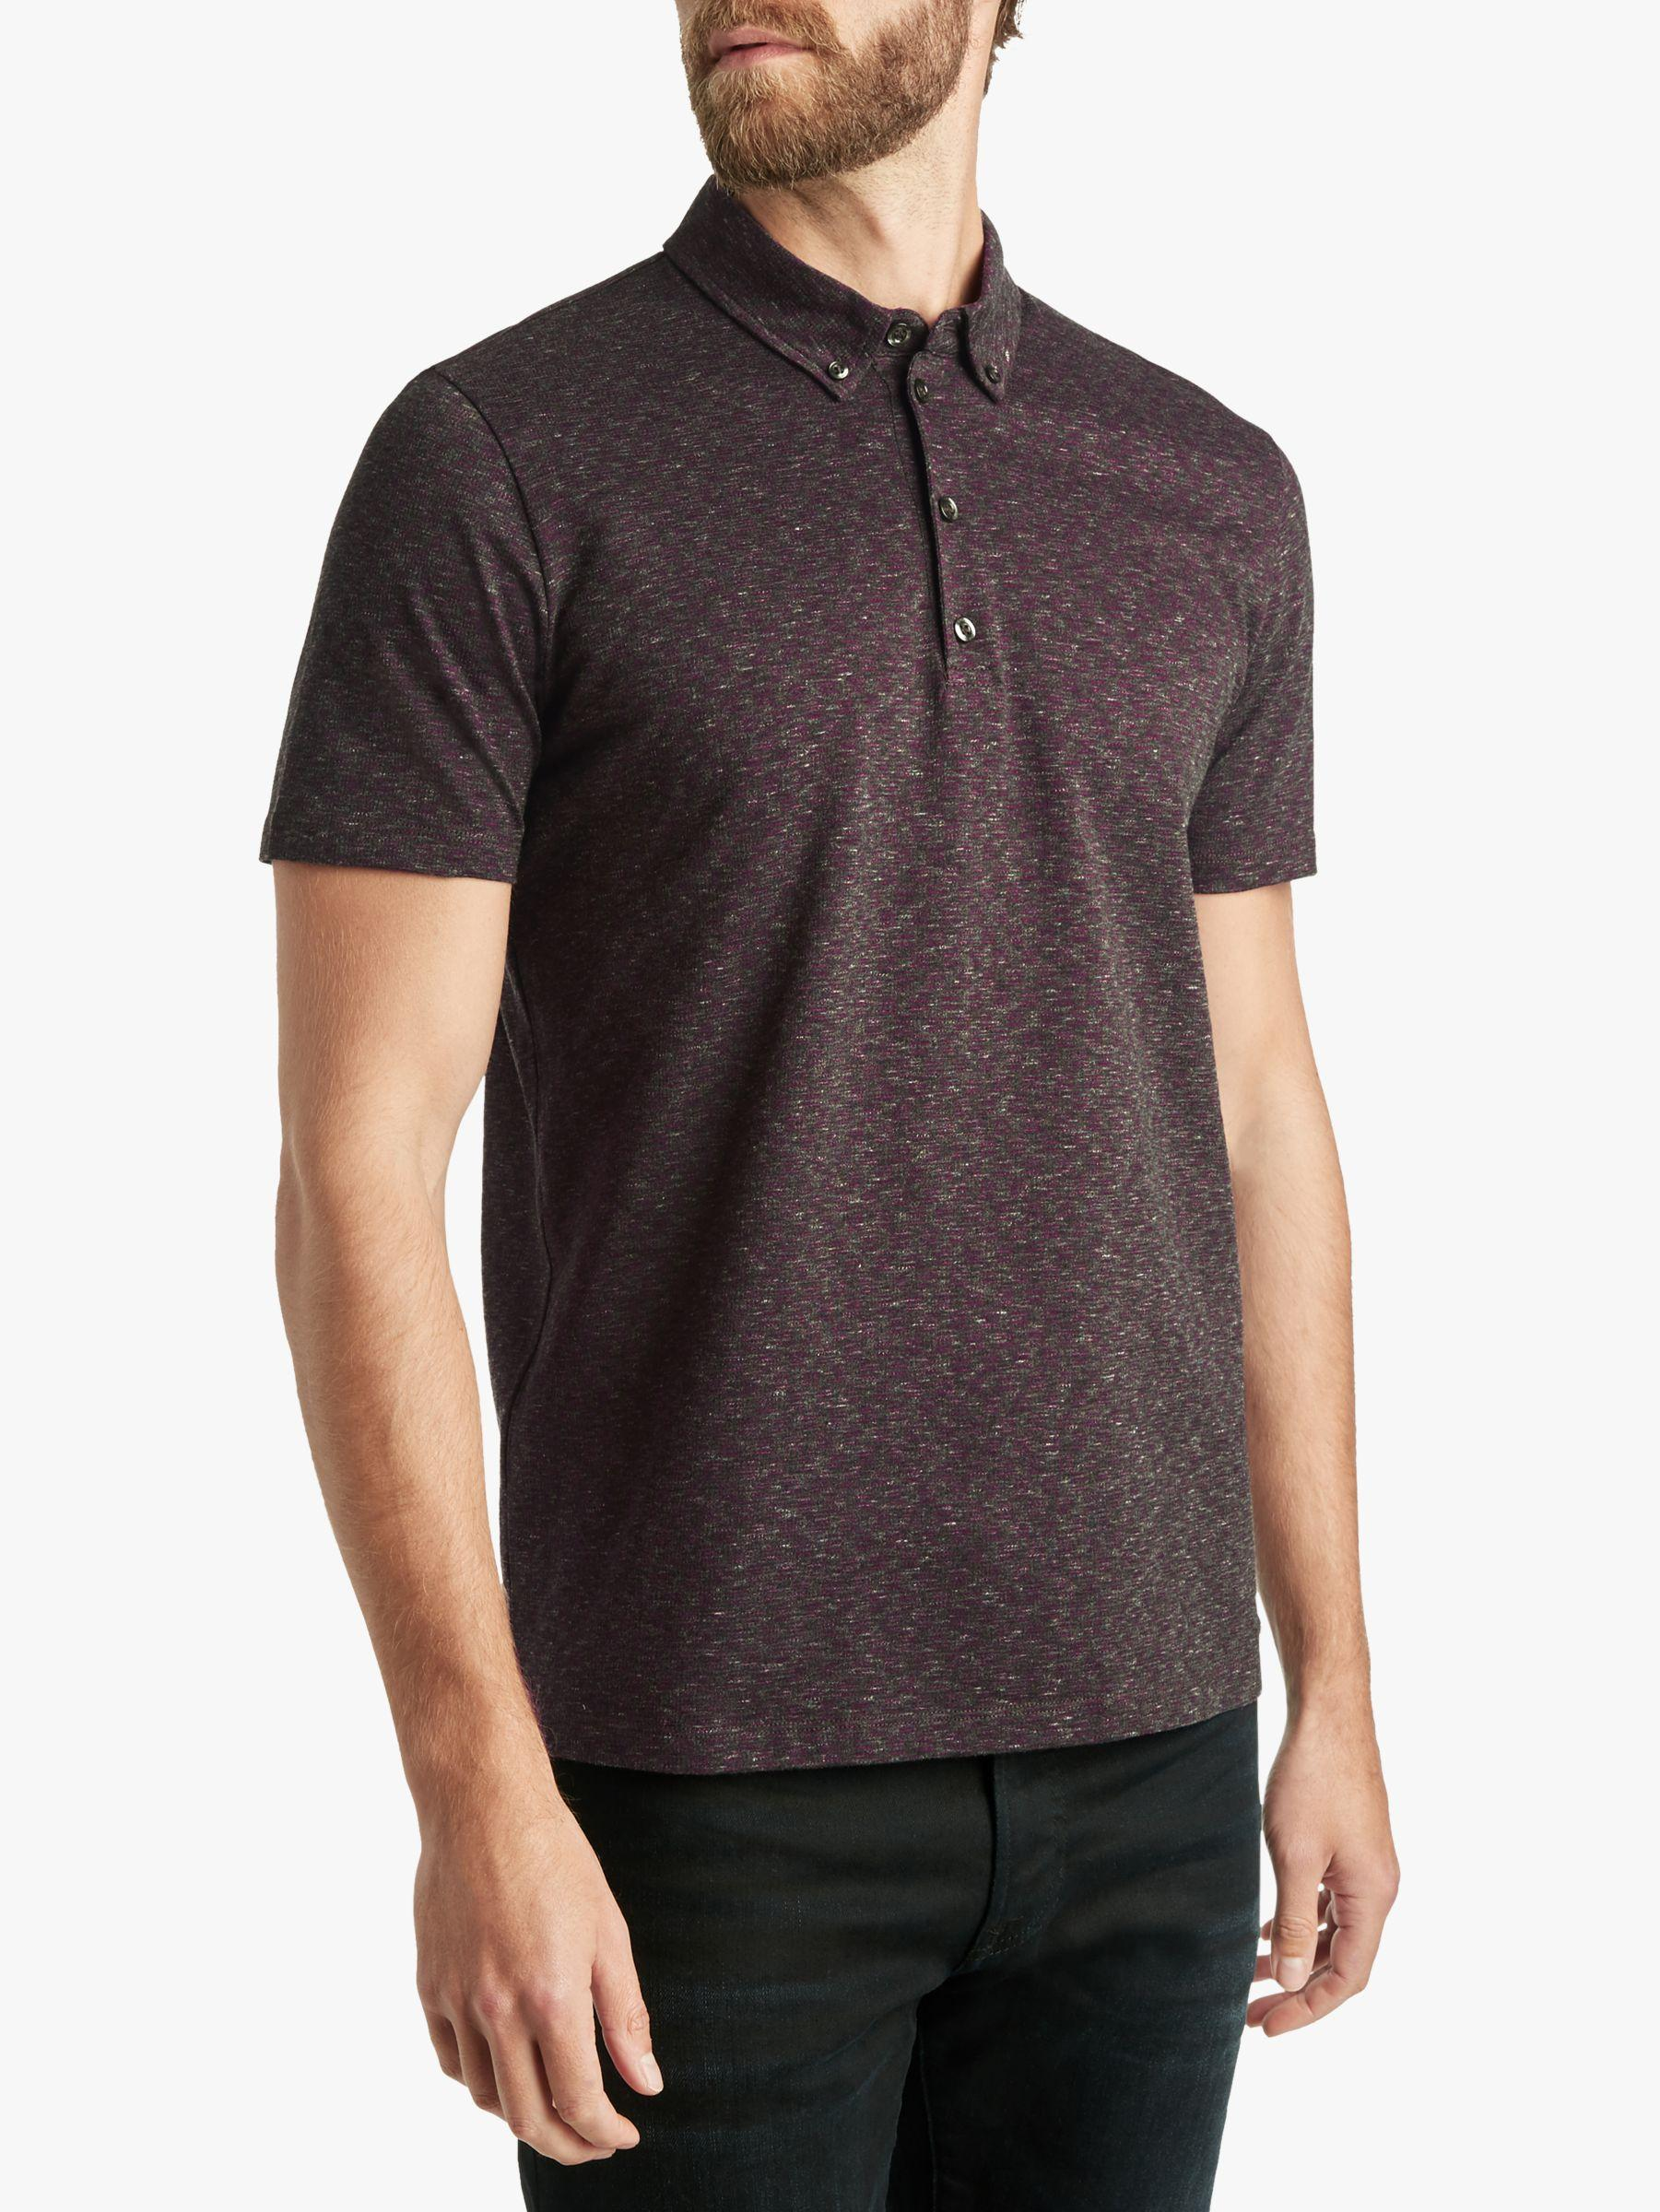 cfb9c780edc0 BOSS. Men's Hugo By Dalence Slim Fit Polo Shirt. £89 From John Lewis and  Partners